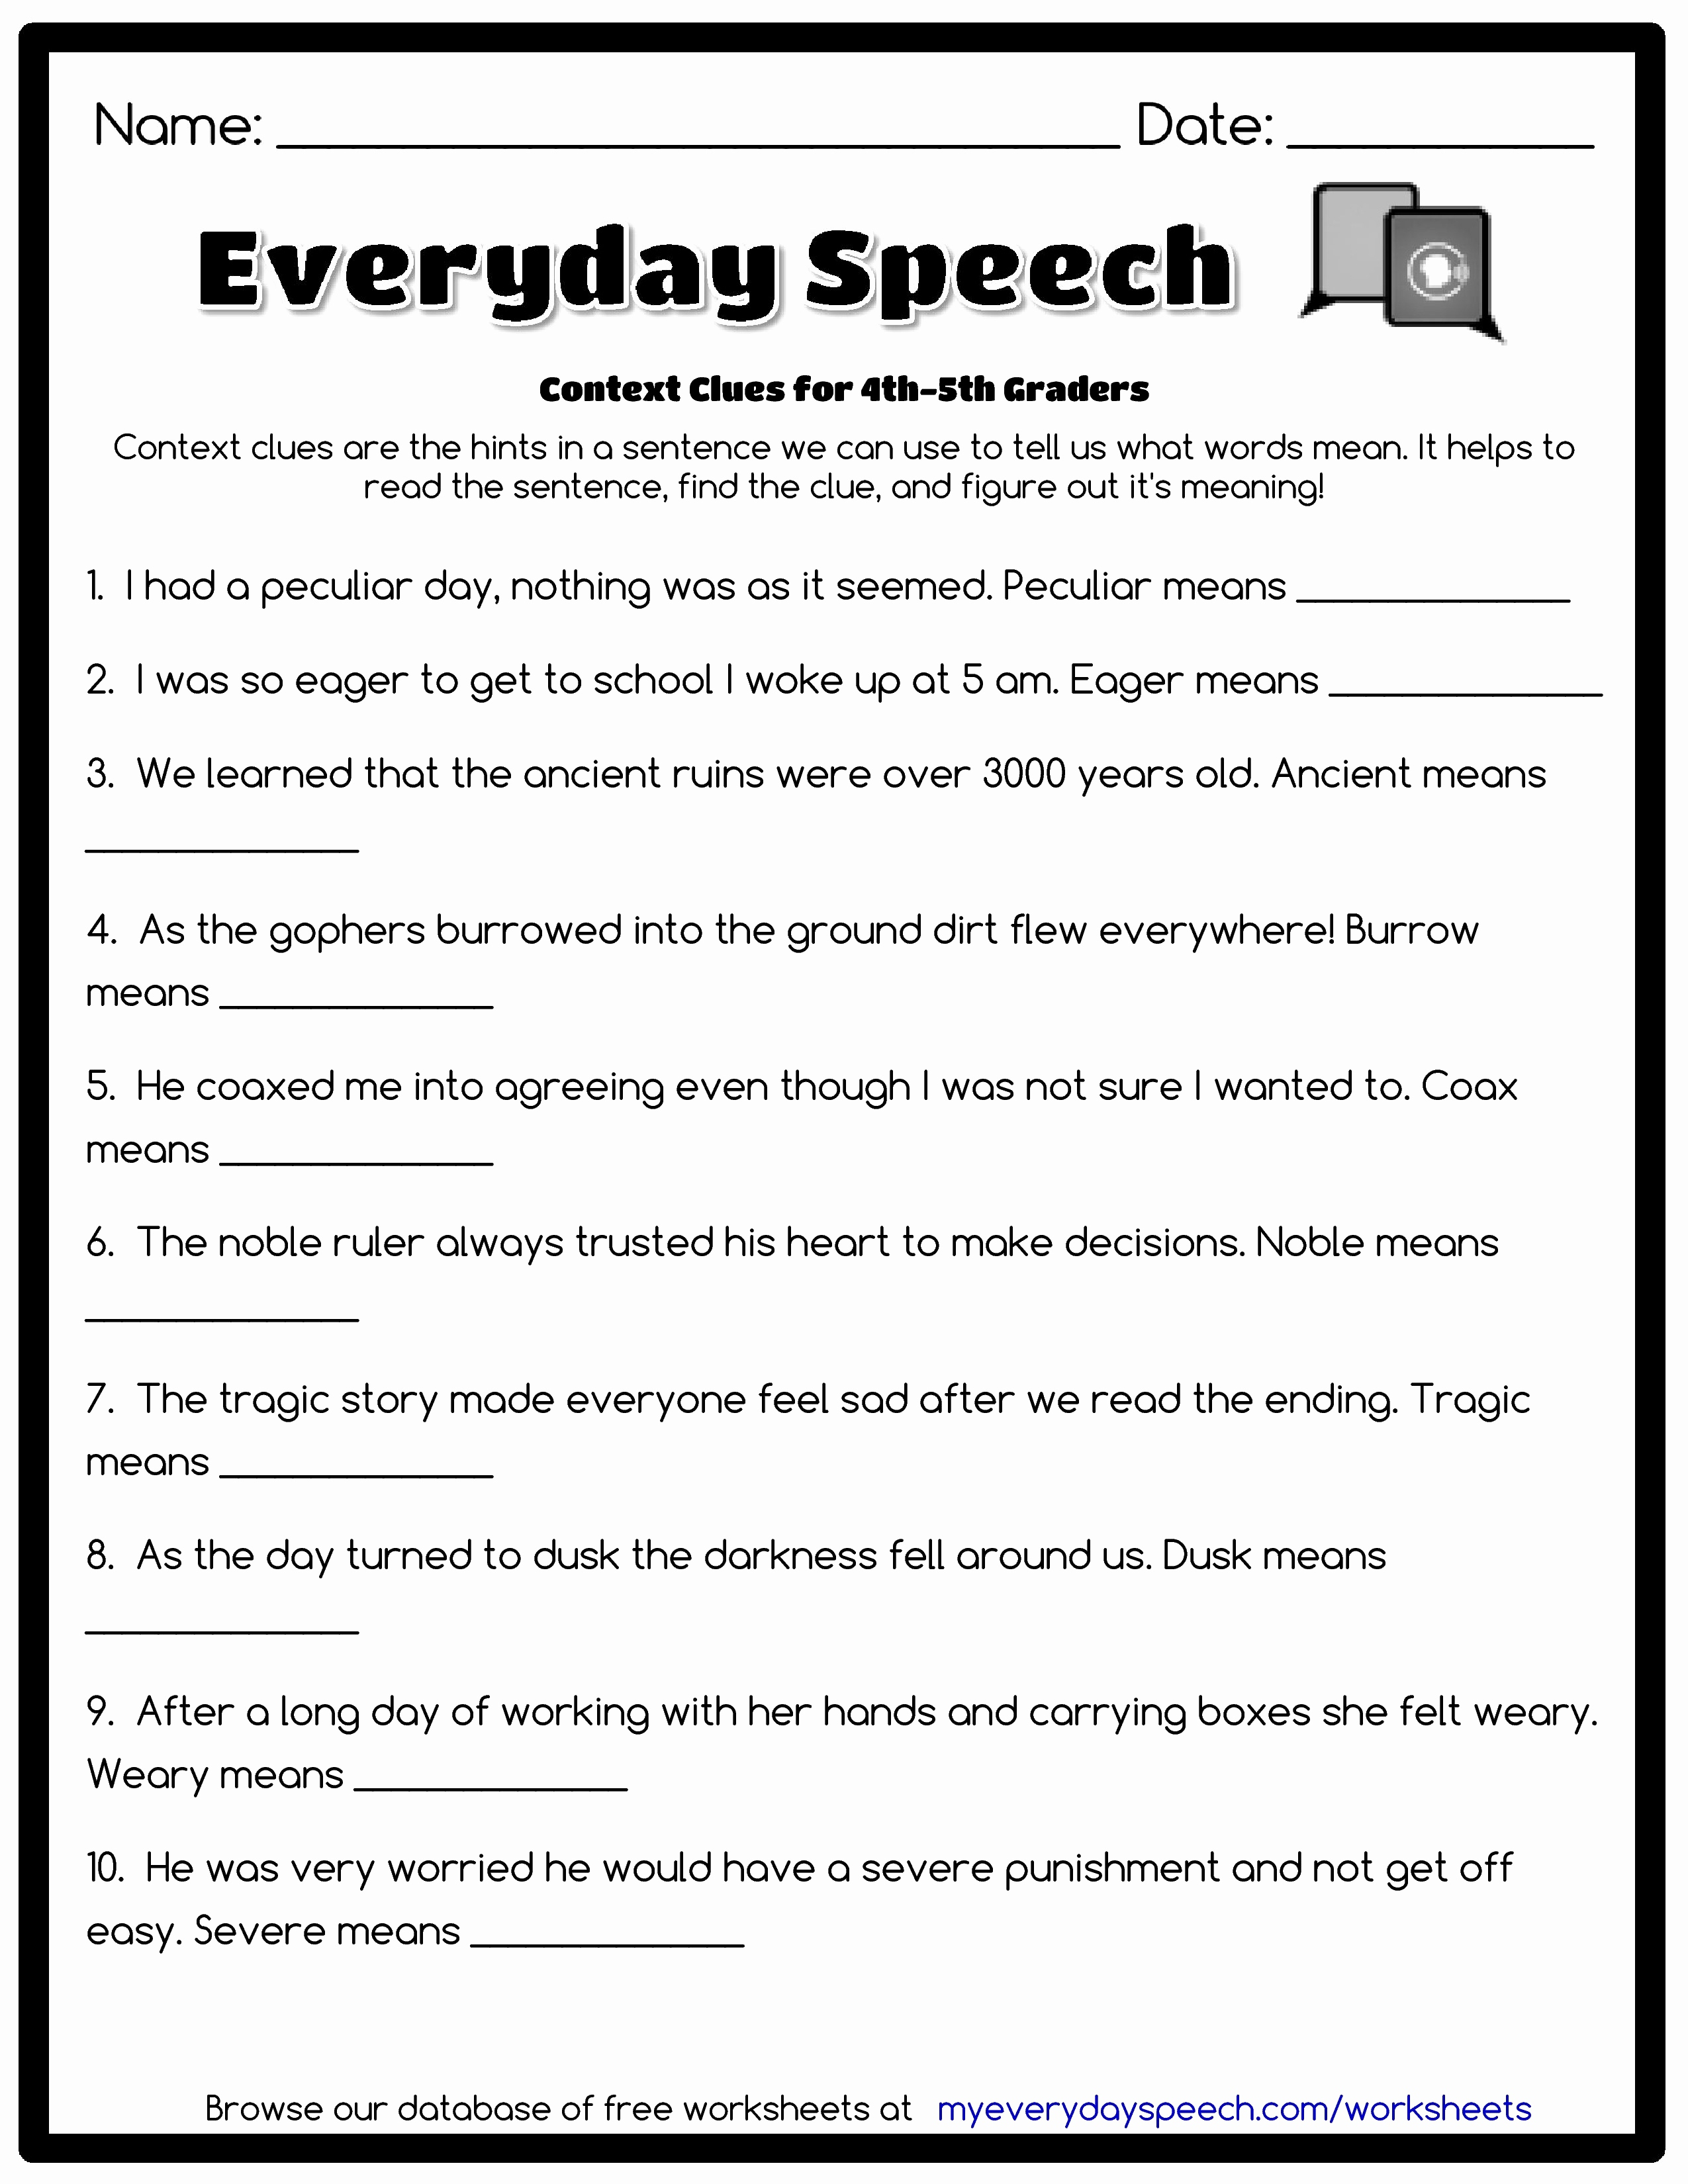 Grammar Worksheets Third Grade To Education - Math Worksheet For | Free Printable Third Grade Grammar Worksheets